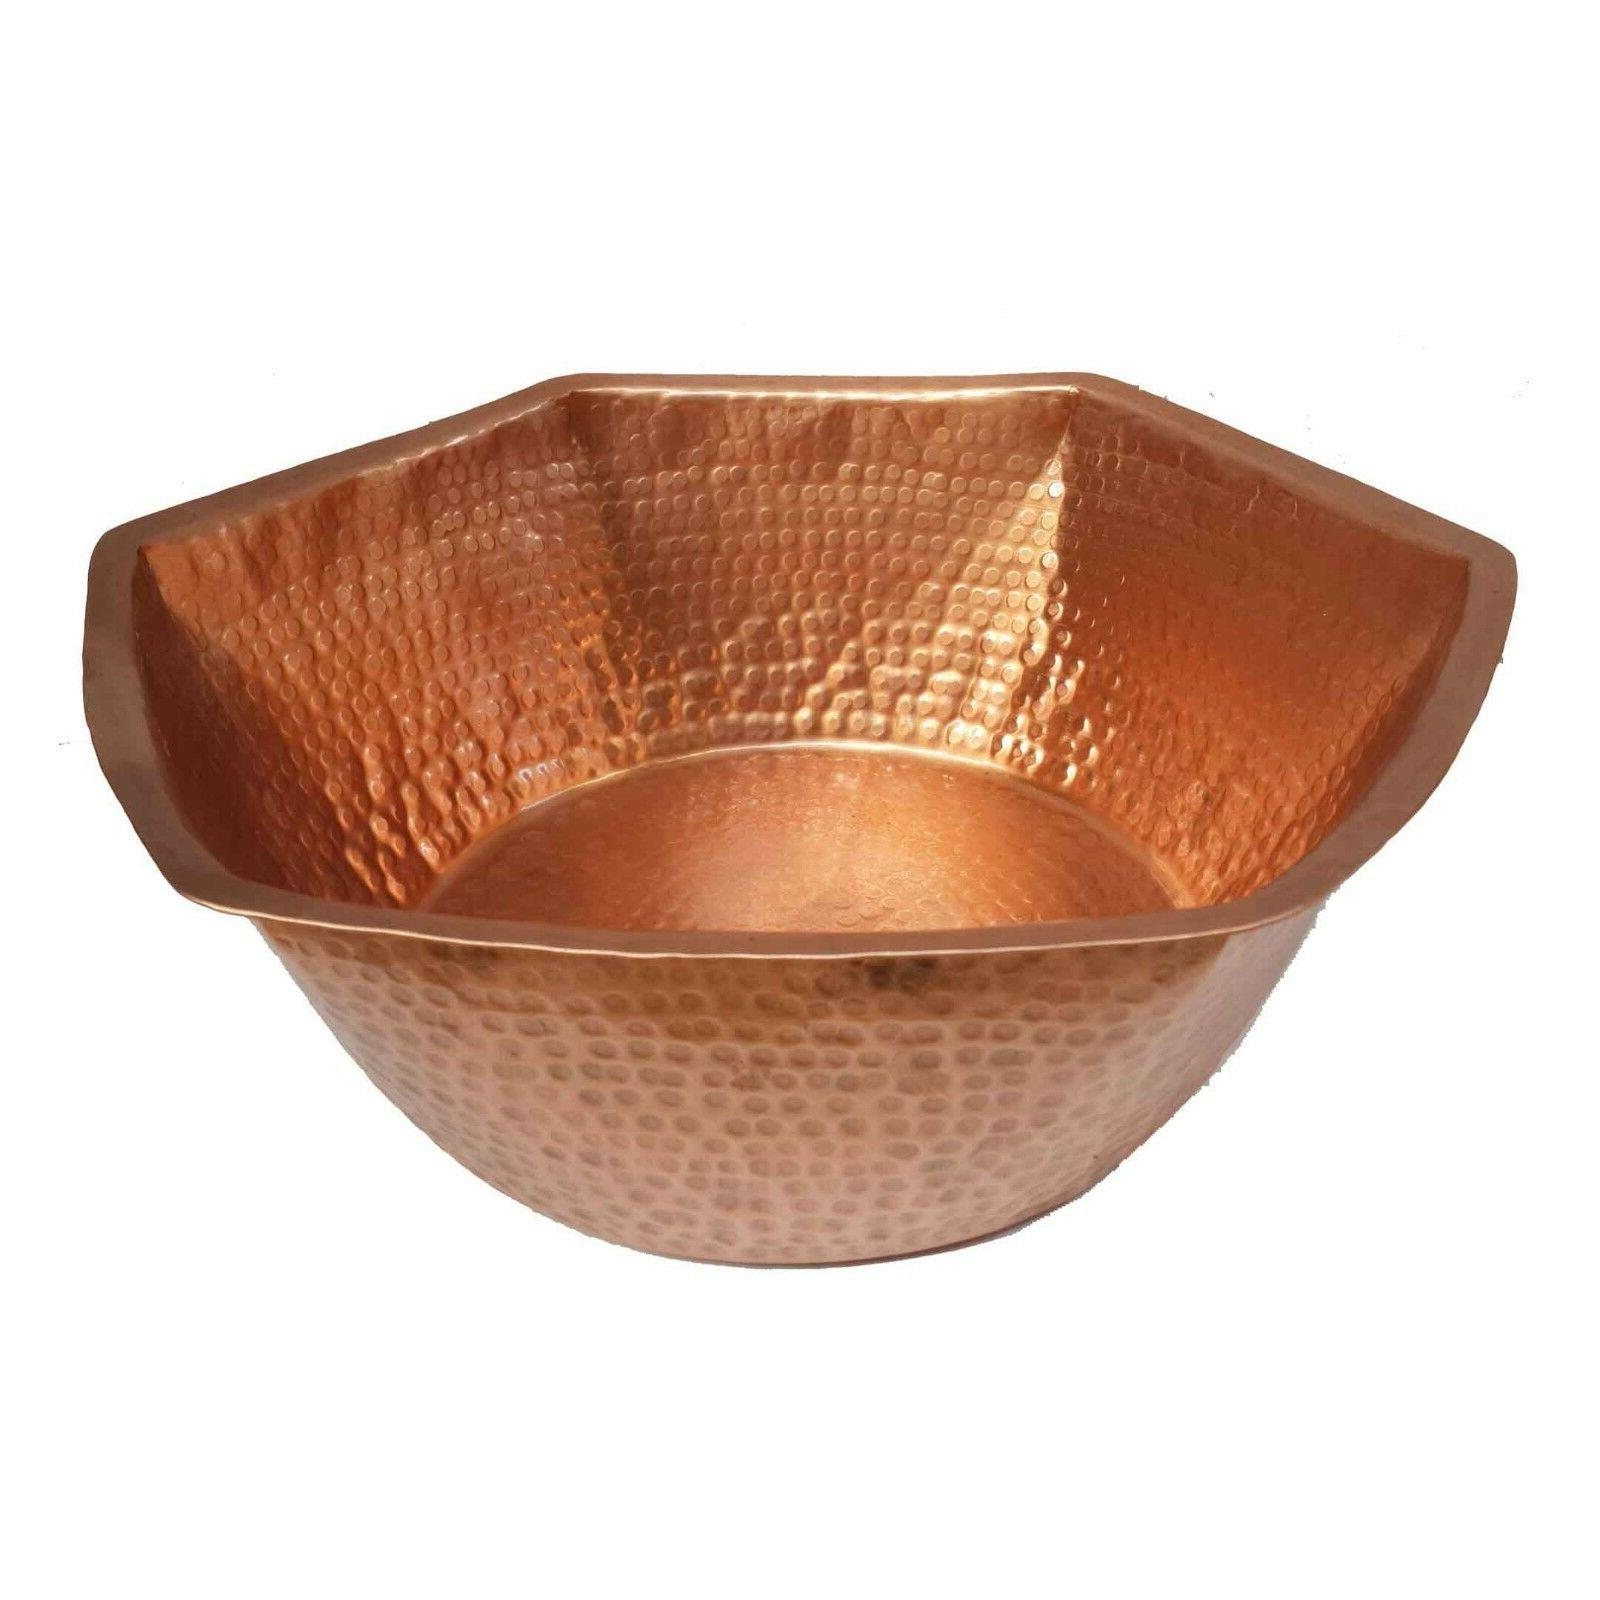 Hexagonal Bare Copper Foot Bath Massage Spa Beauty Salon The